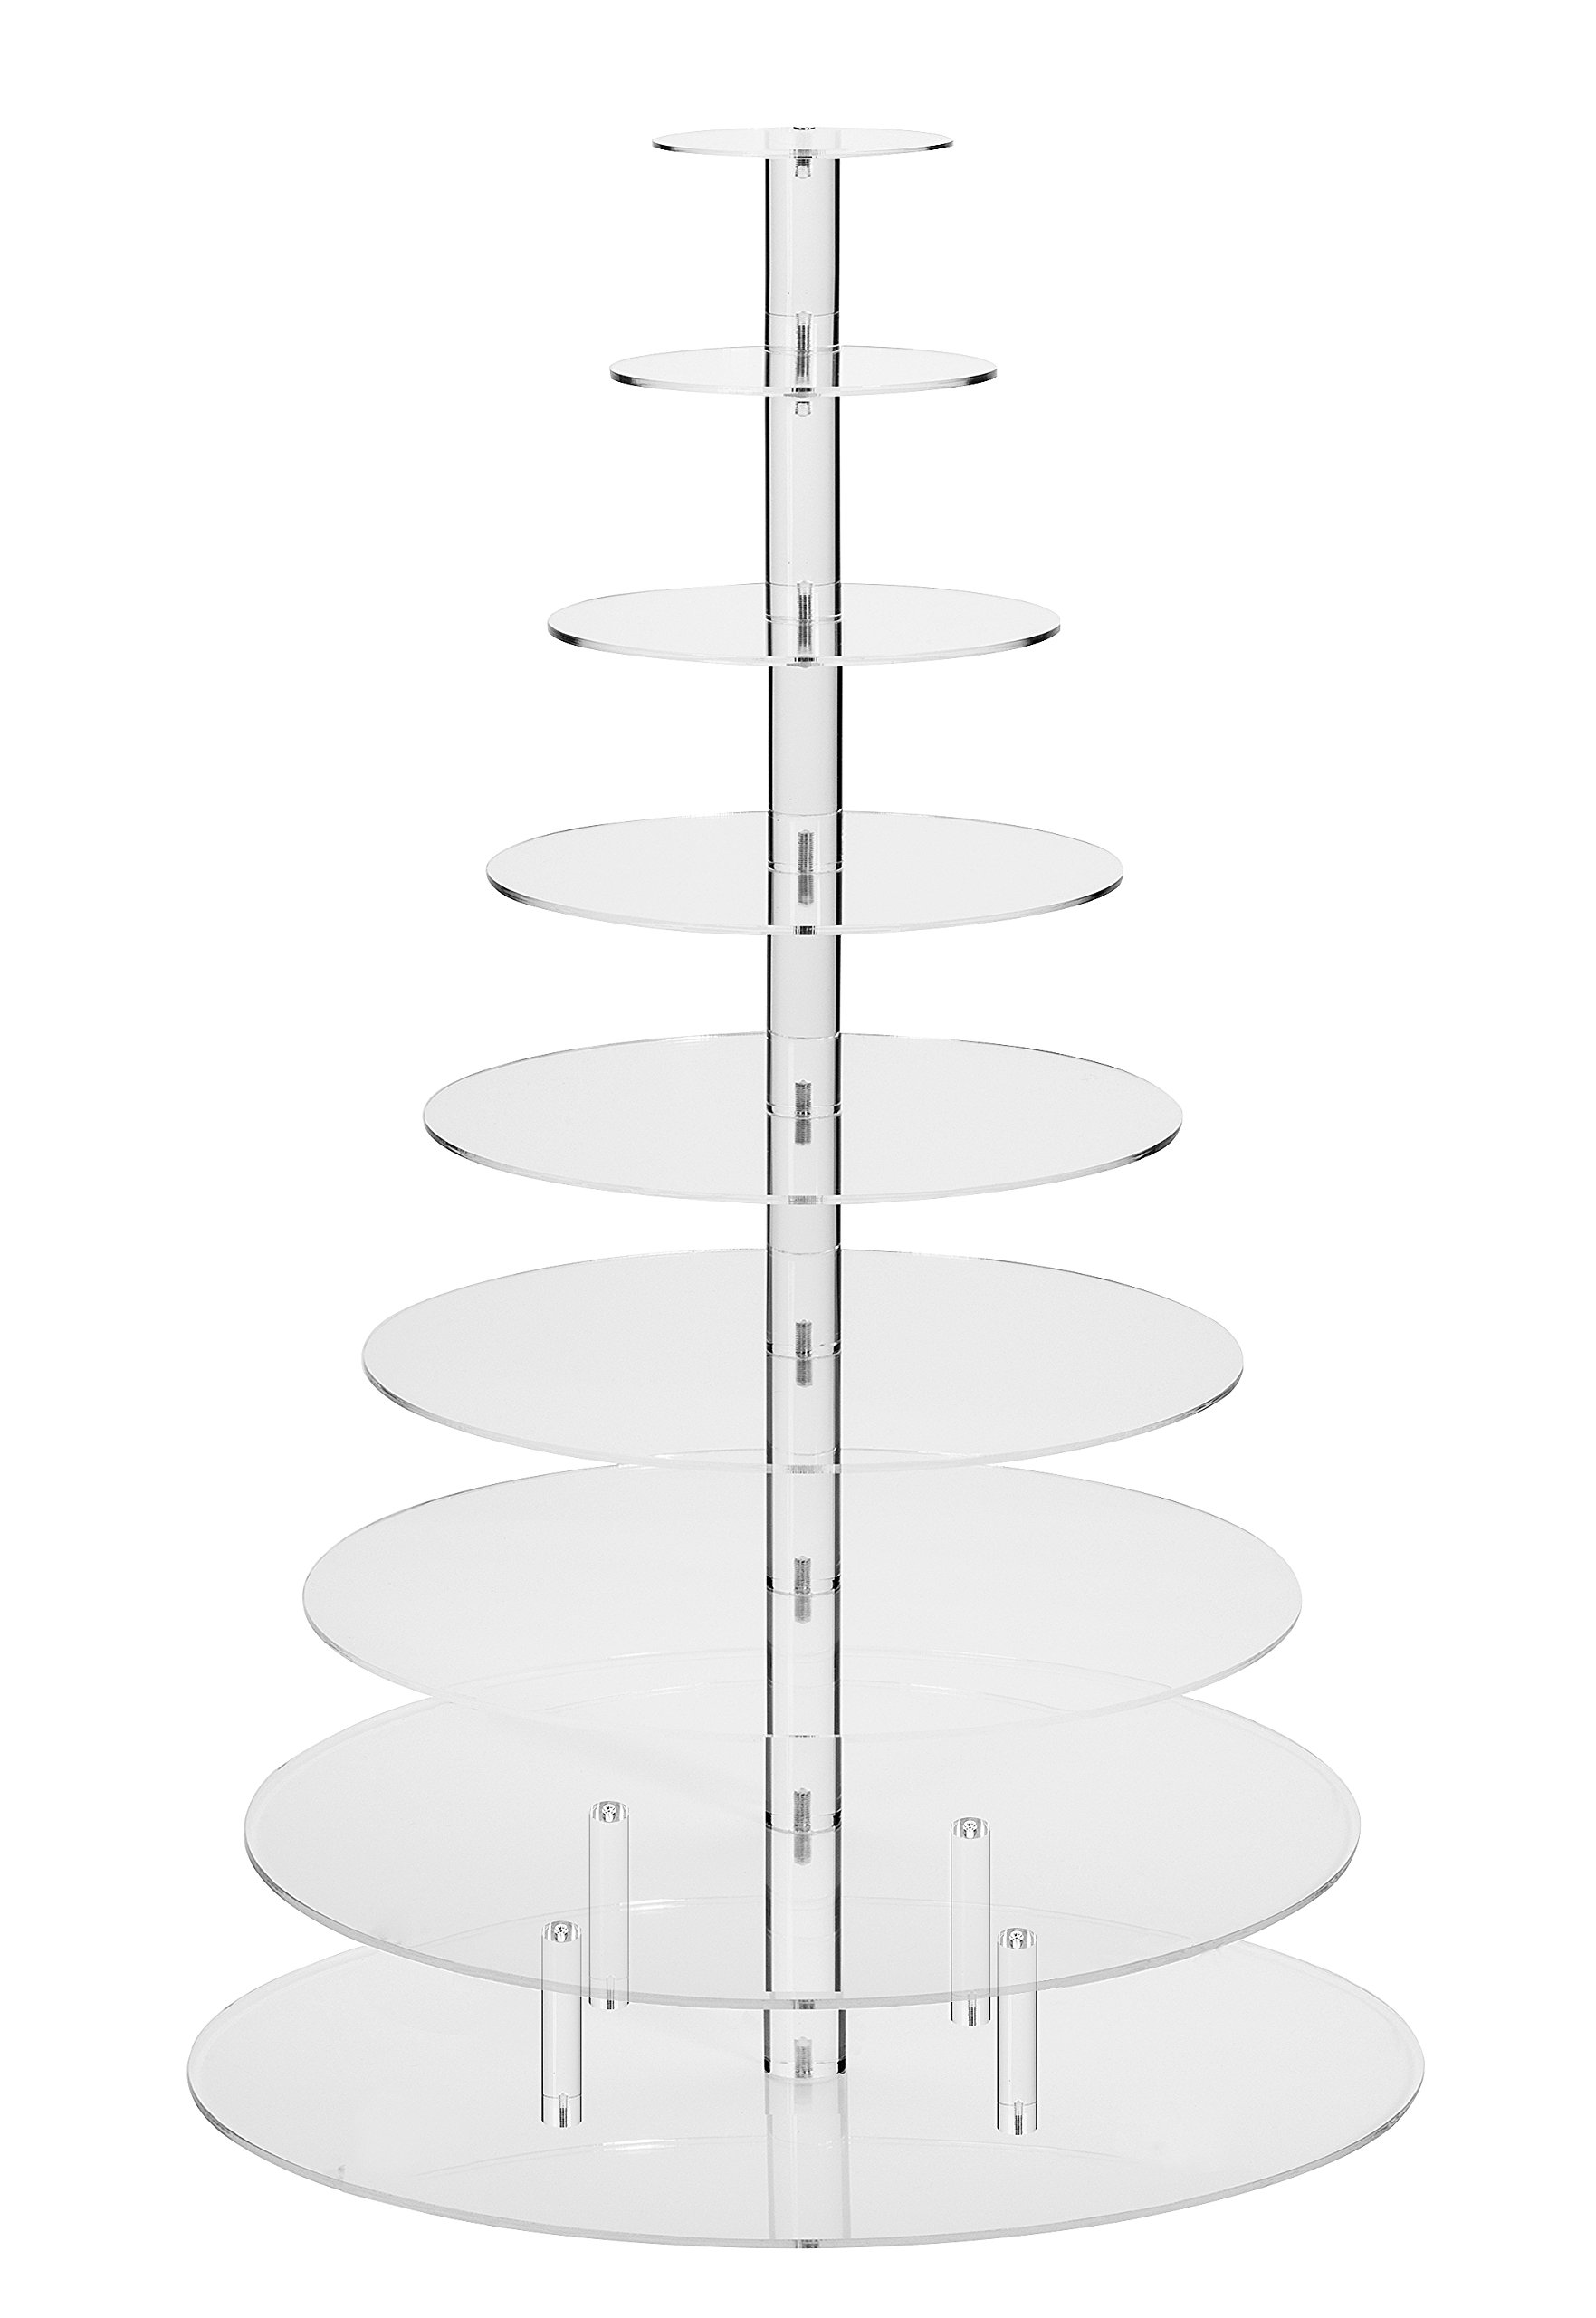 Jusalpha Large 9-Tier Acrylic Glass Round Cake Stand-cupcake Stand- Dessert Stand-tea Party Serving Platter for Wedding Party